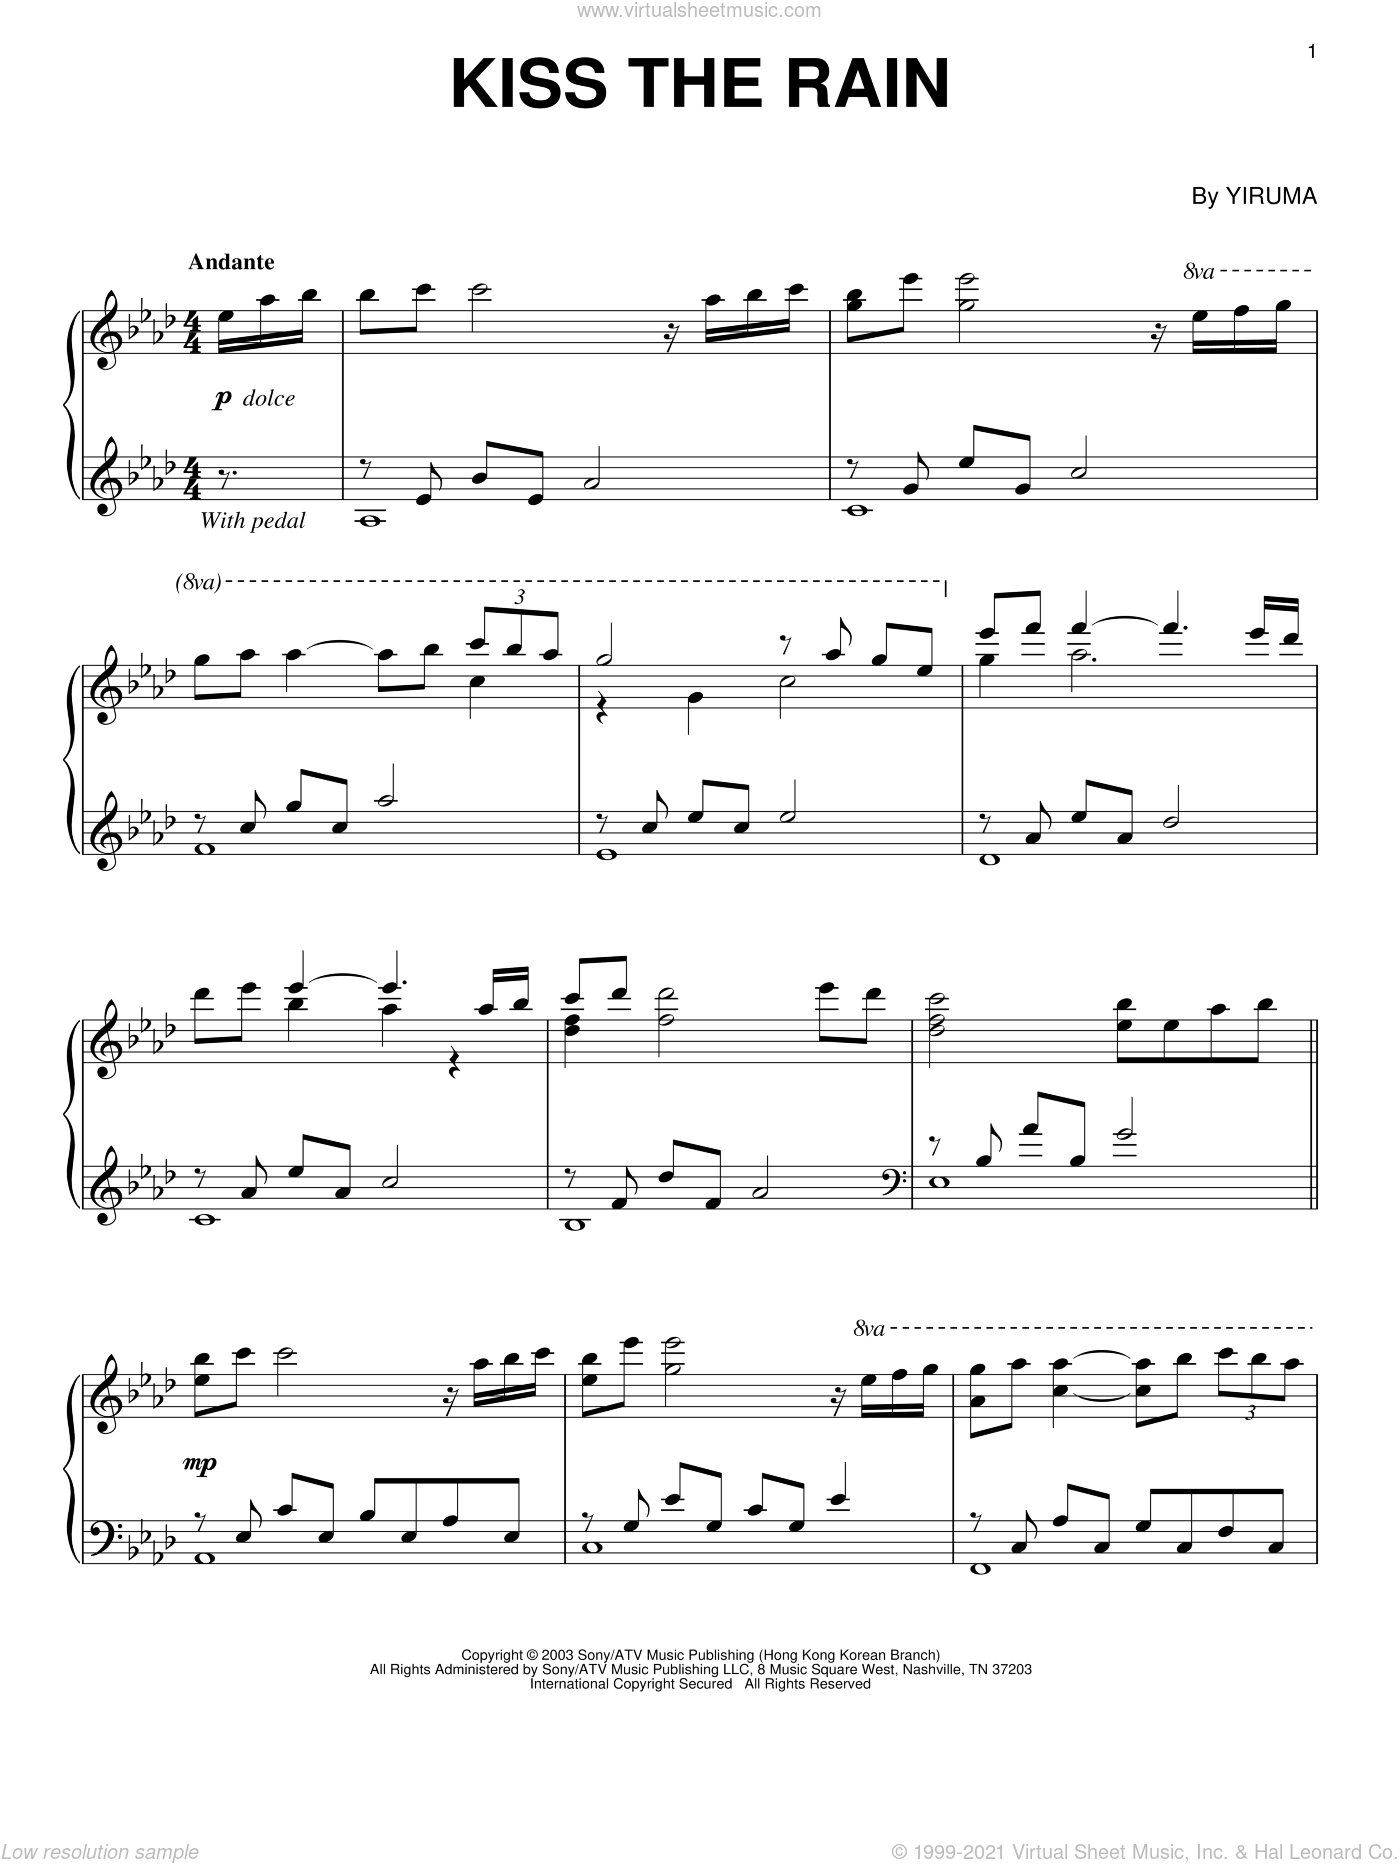 Kiss The Rain sheet music for piano solo by Yiruma